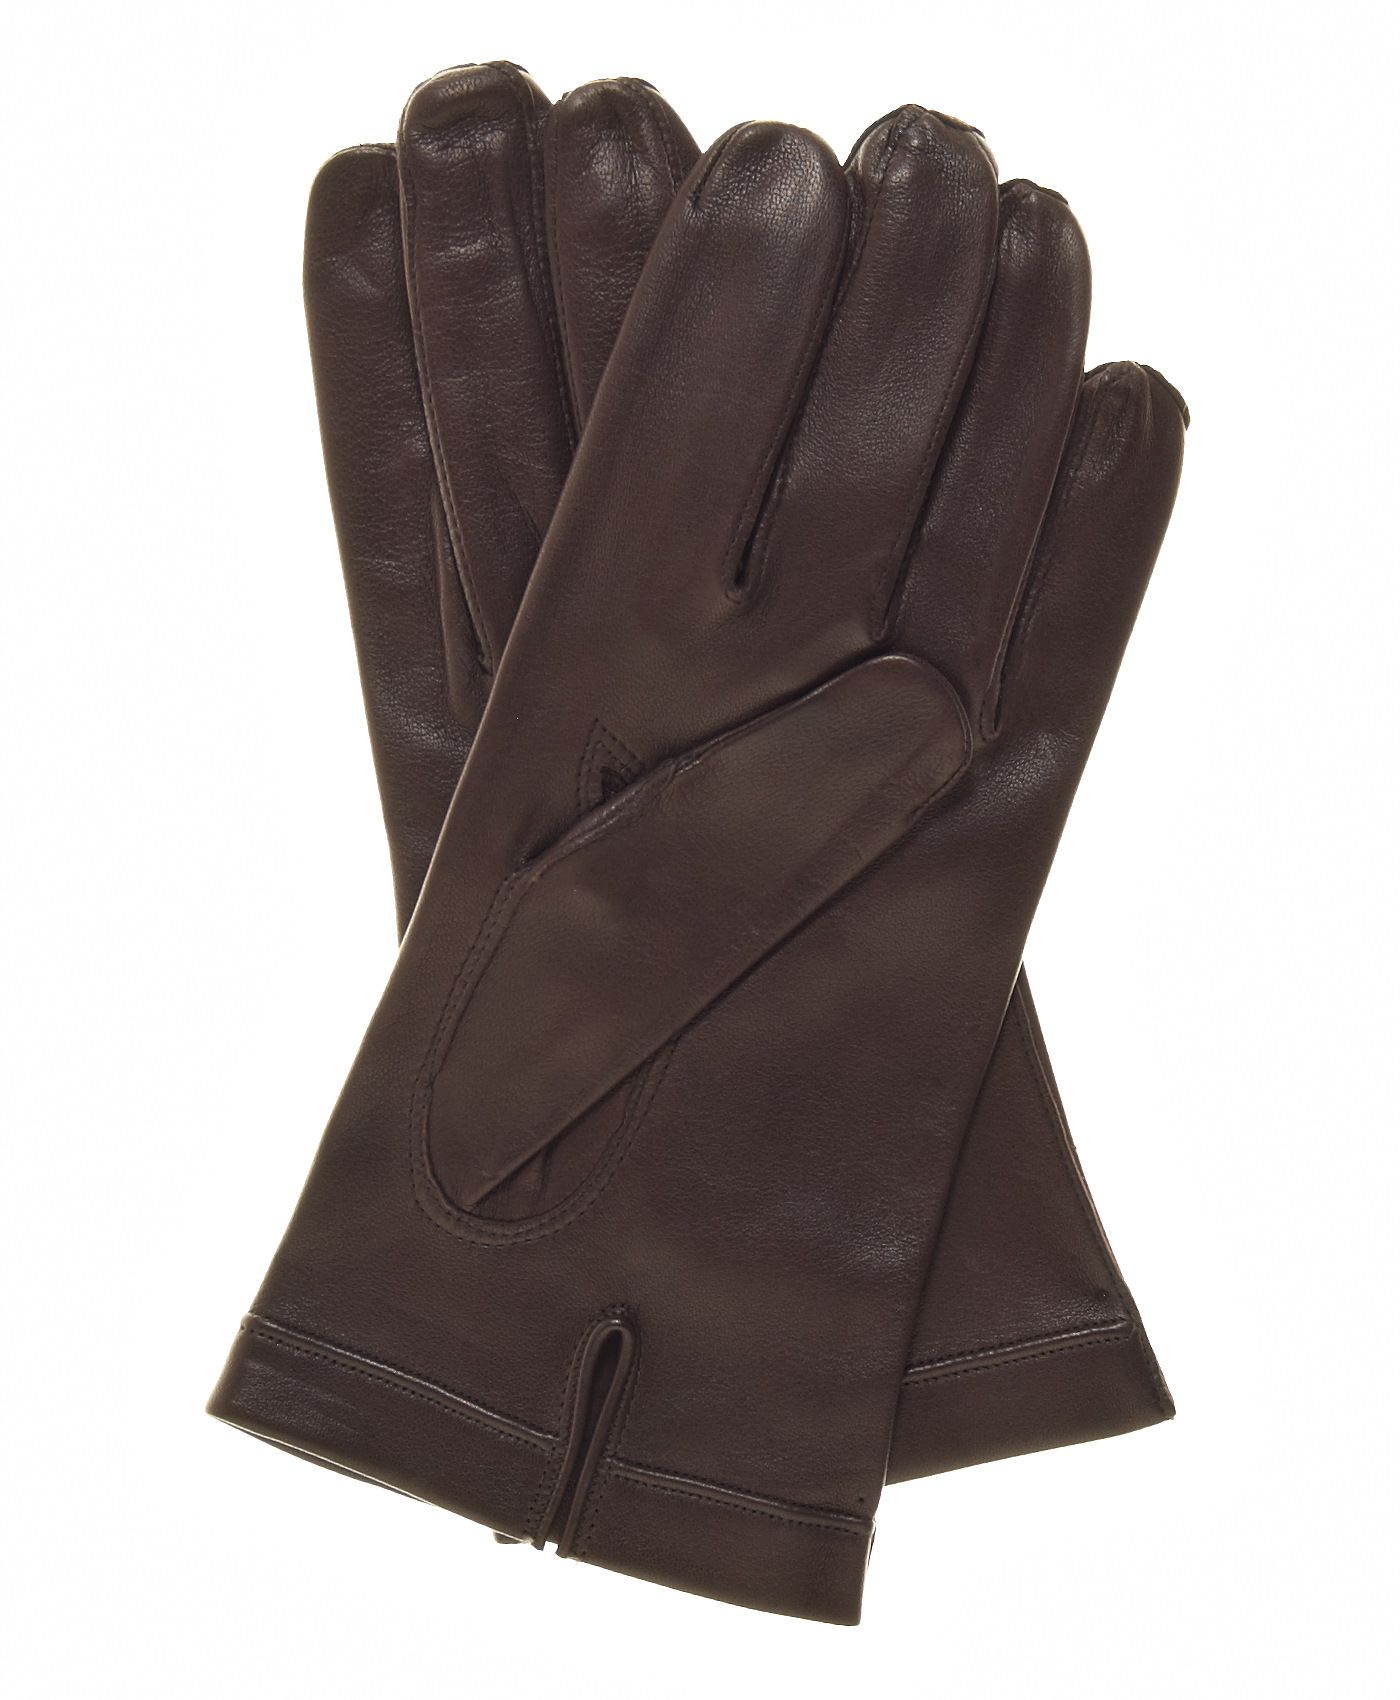 e08c68ec322b0 Men's Italian Unlined Leather Gloves By Fratelli Orsini | Free USA Shipping  at Leather Gloves Online